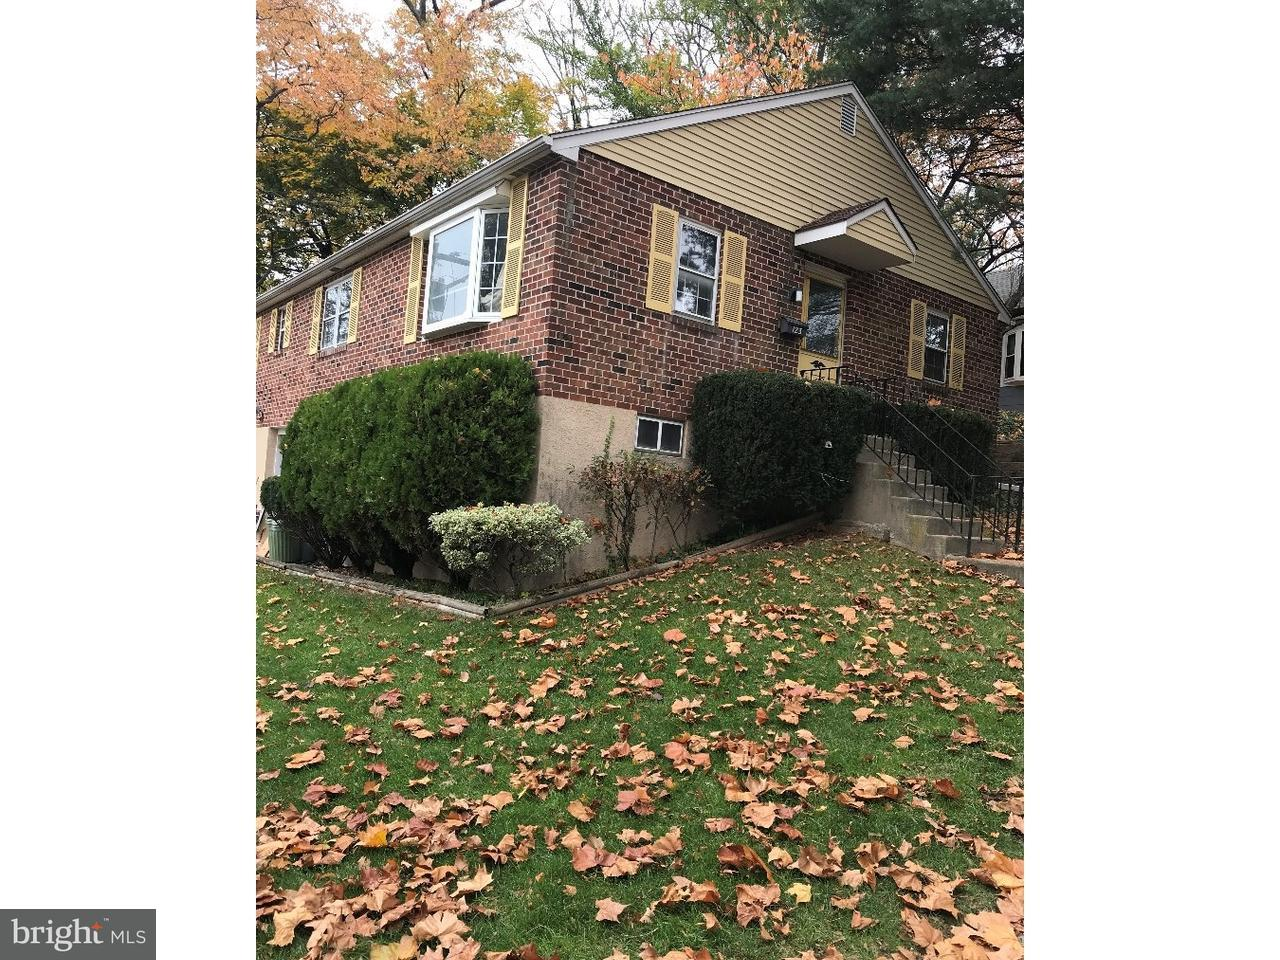 Single Family Home for Sale at 123 W RIDLEY Avenue Ridley Park, Pennsylvania 19078 United States